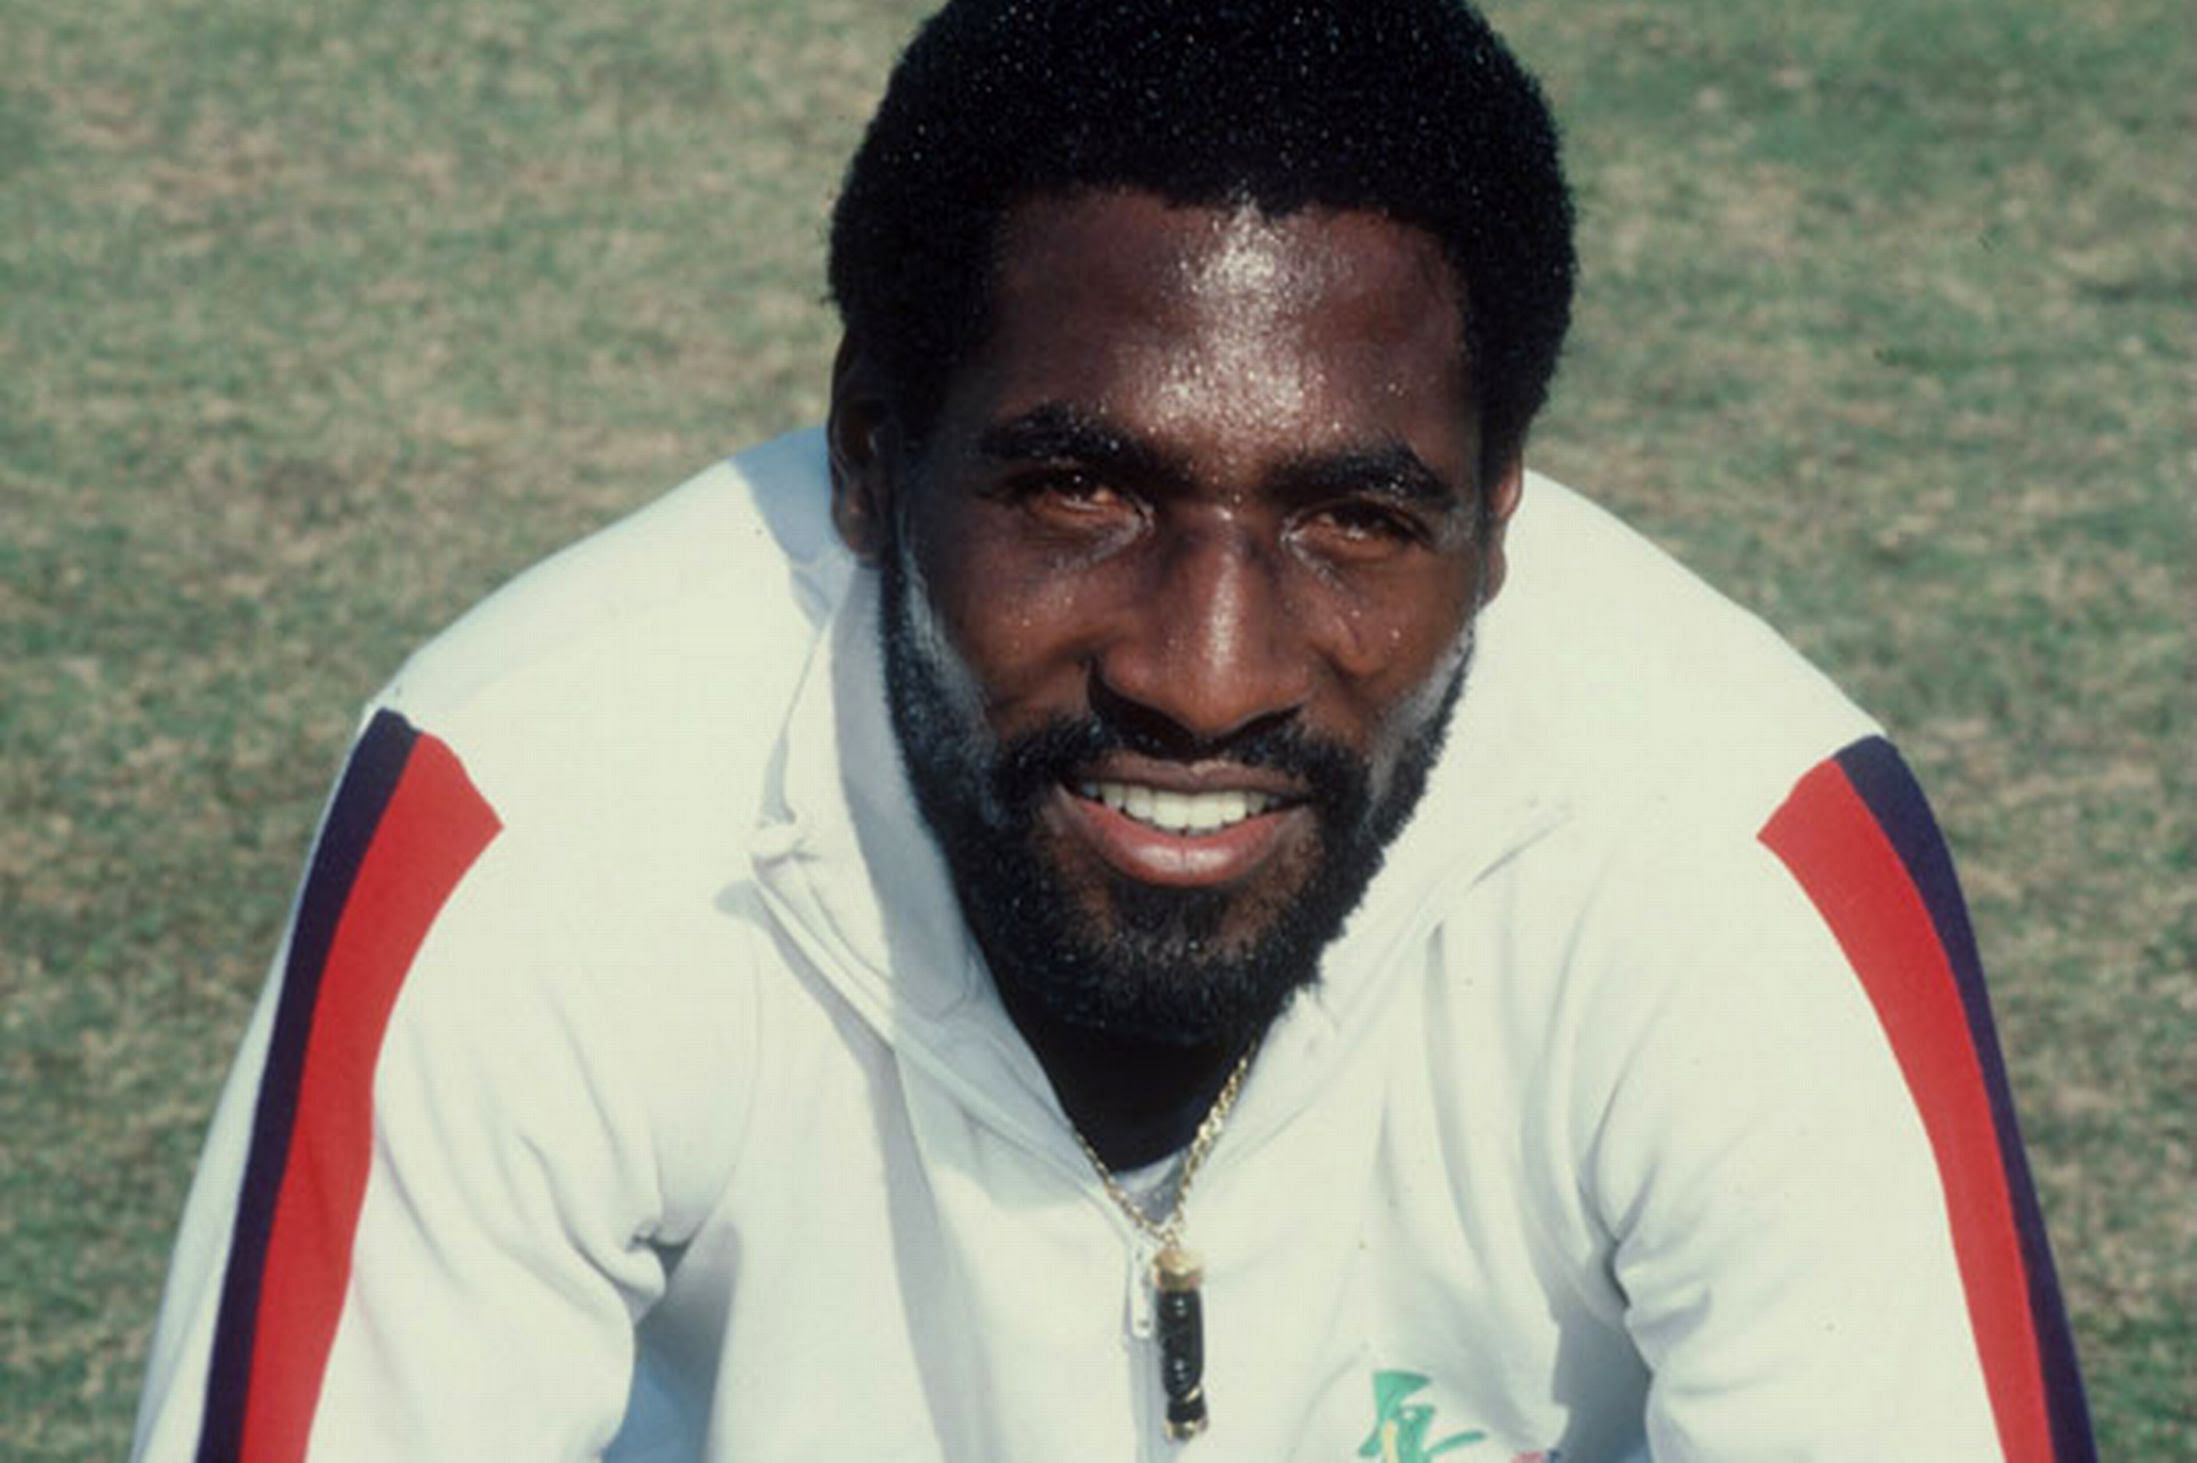 Vivian Richards entered into the footballing career in the year 1974